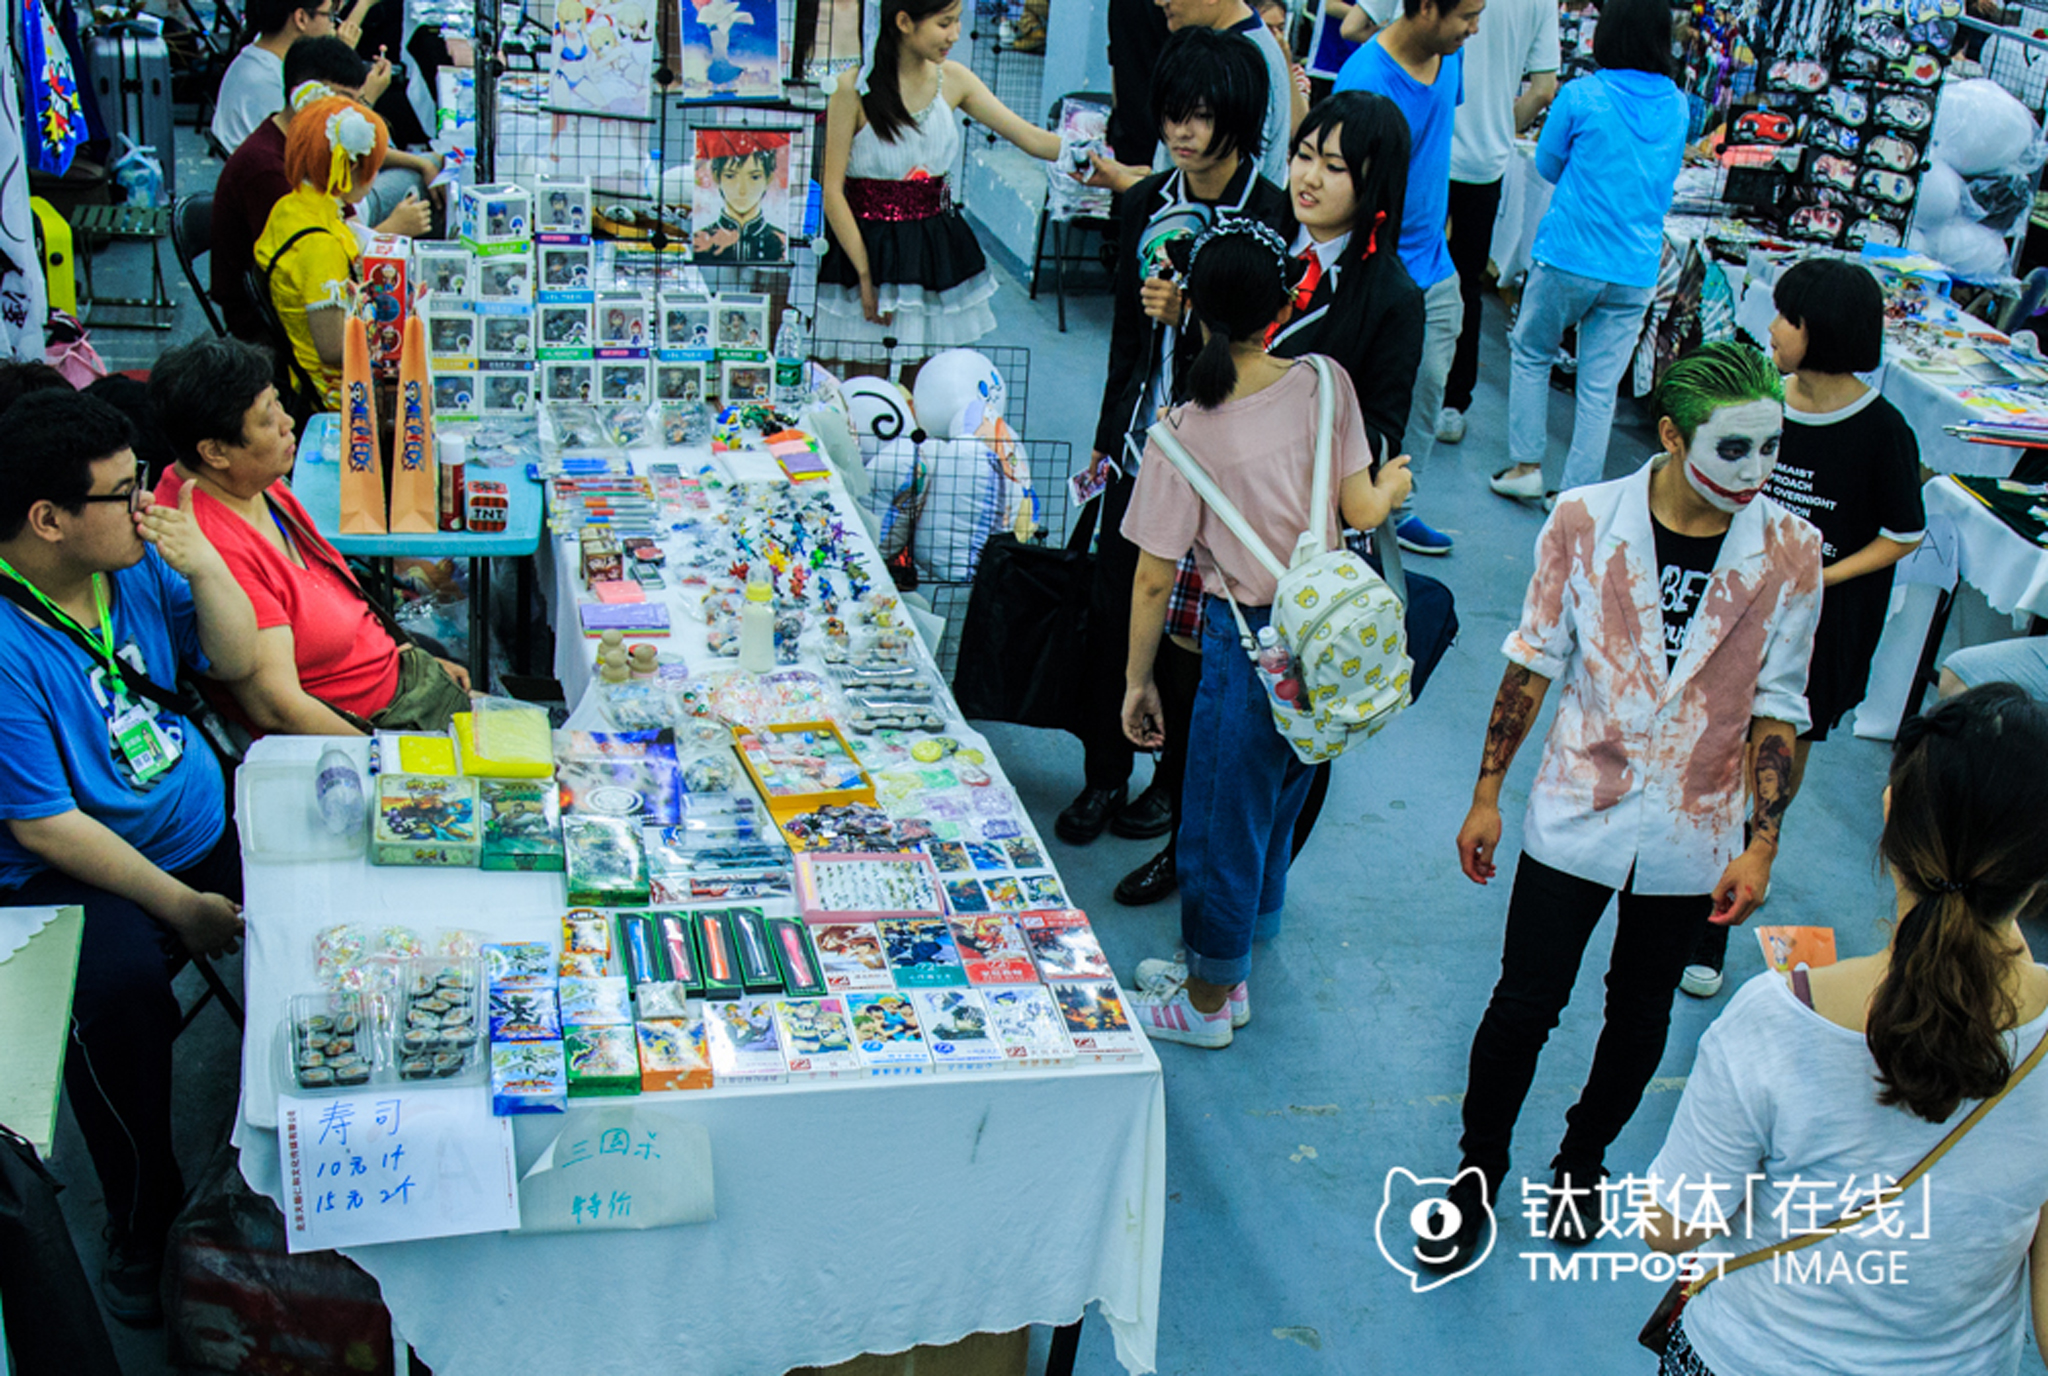 """Most of the 100 stands on the Dream Comic Show were rented by cosers who sold hand-made """"weapons"""", models, cards or posters. They had to pay RMB 150 for the stand every day, and kept of rest of what they earned to keep their cosplay habit."""